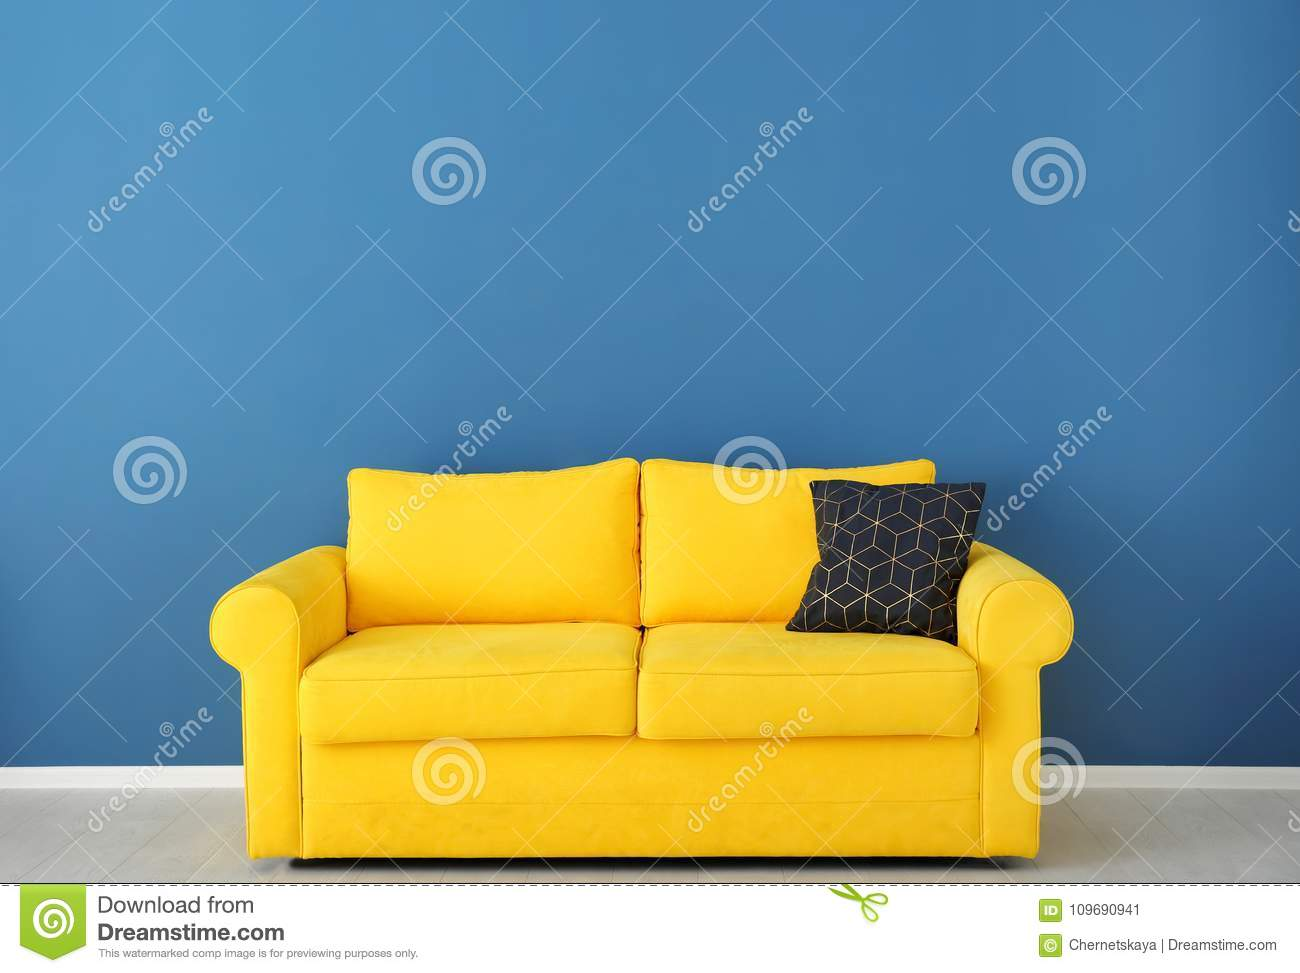 Bright Yellow Couch Near Wall Stock Image - Image of design, estate ...